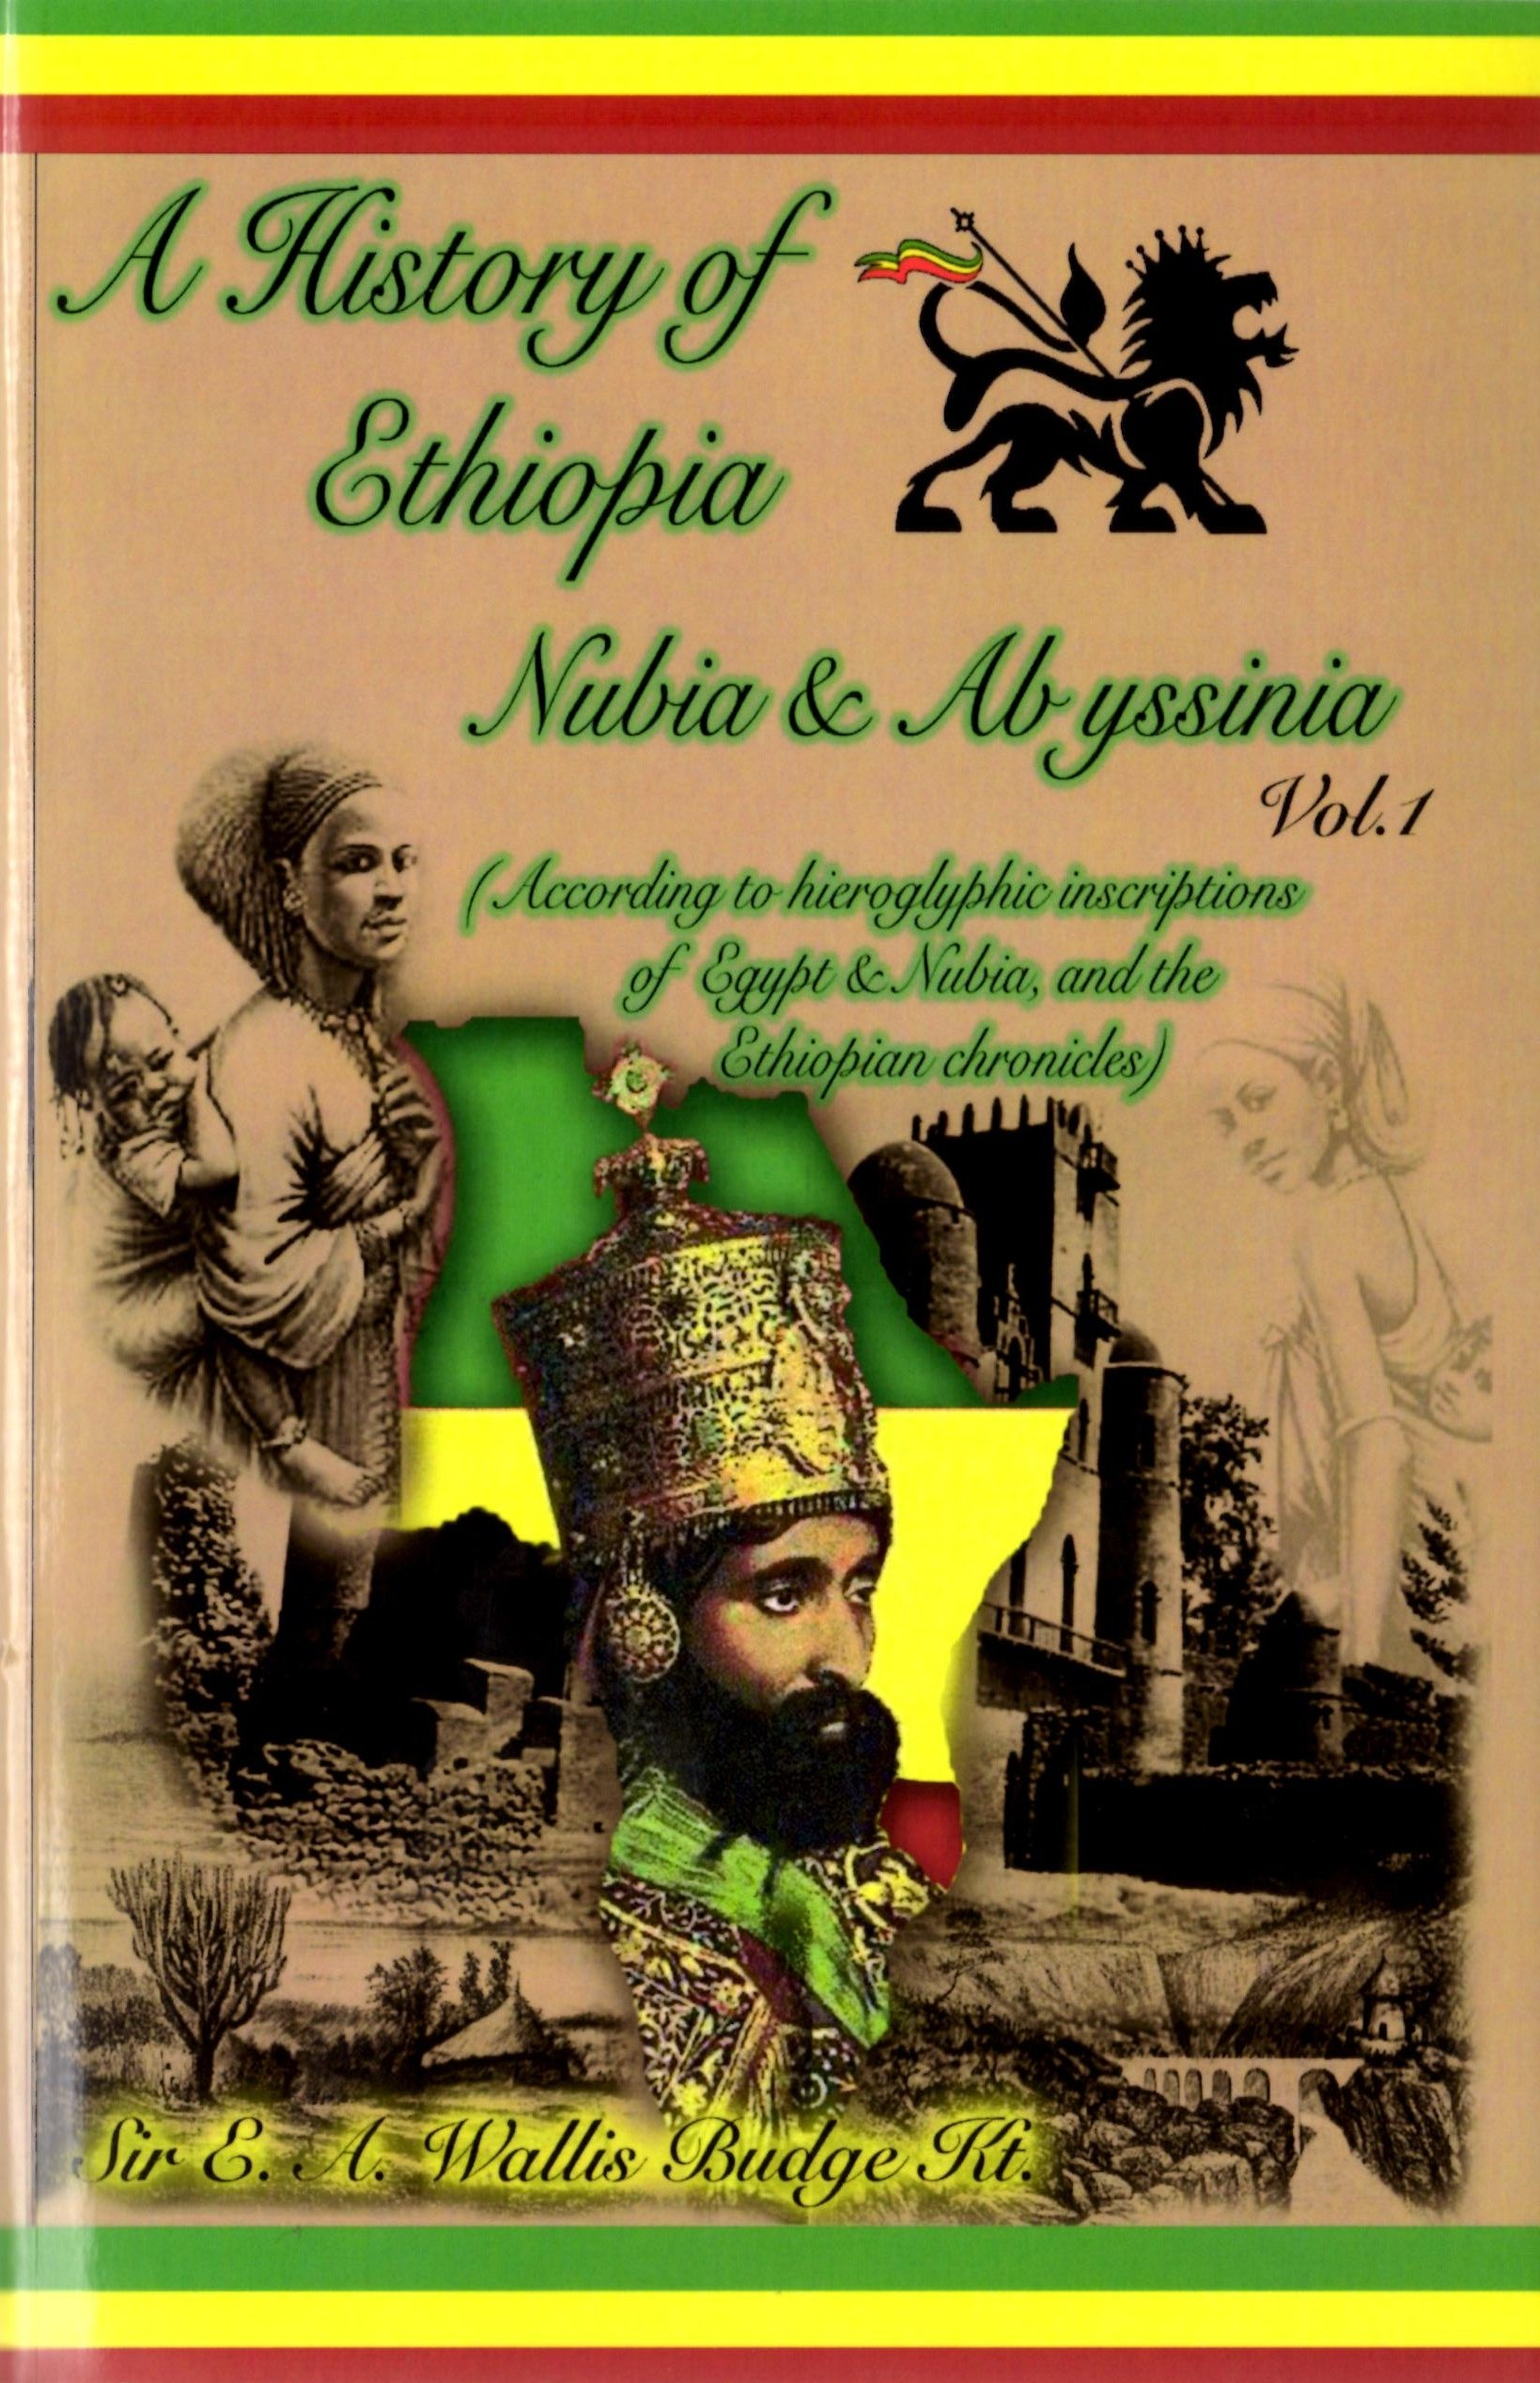 A History of Ethiopia Nubia & Abyssinia, Vol. 1 (My Life and Ethiopia's Progress)